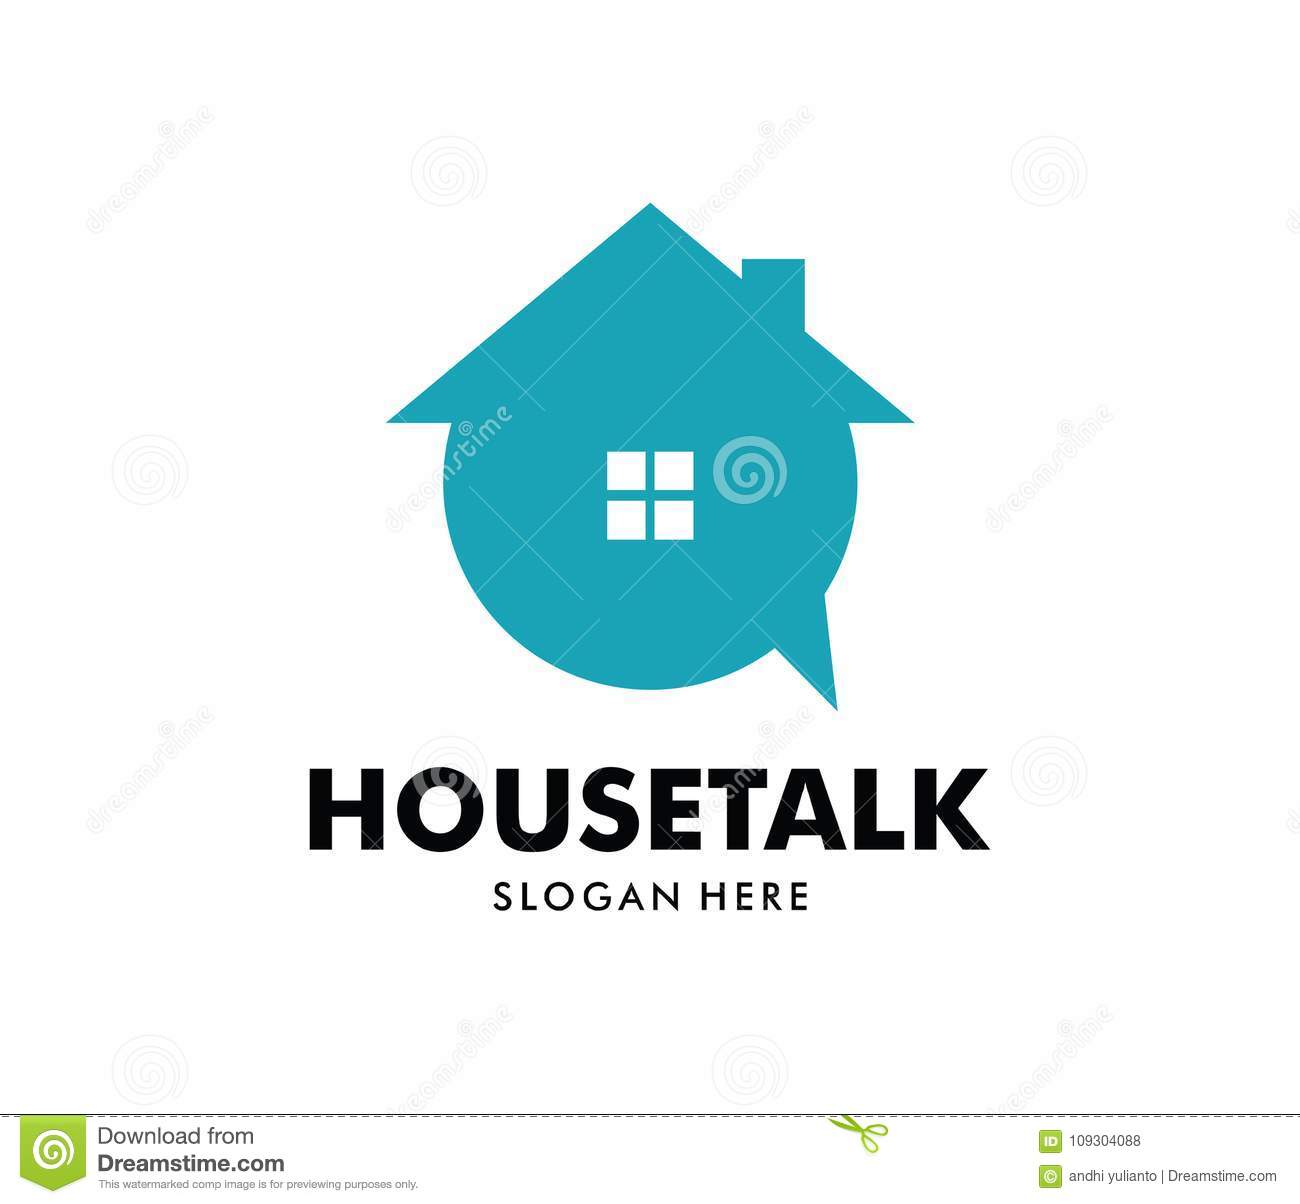 vector logo design of house talk application perfect for mobile